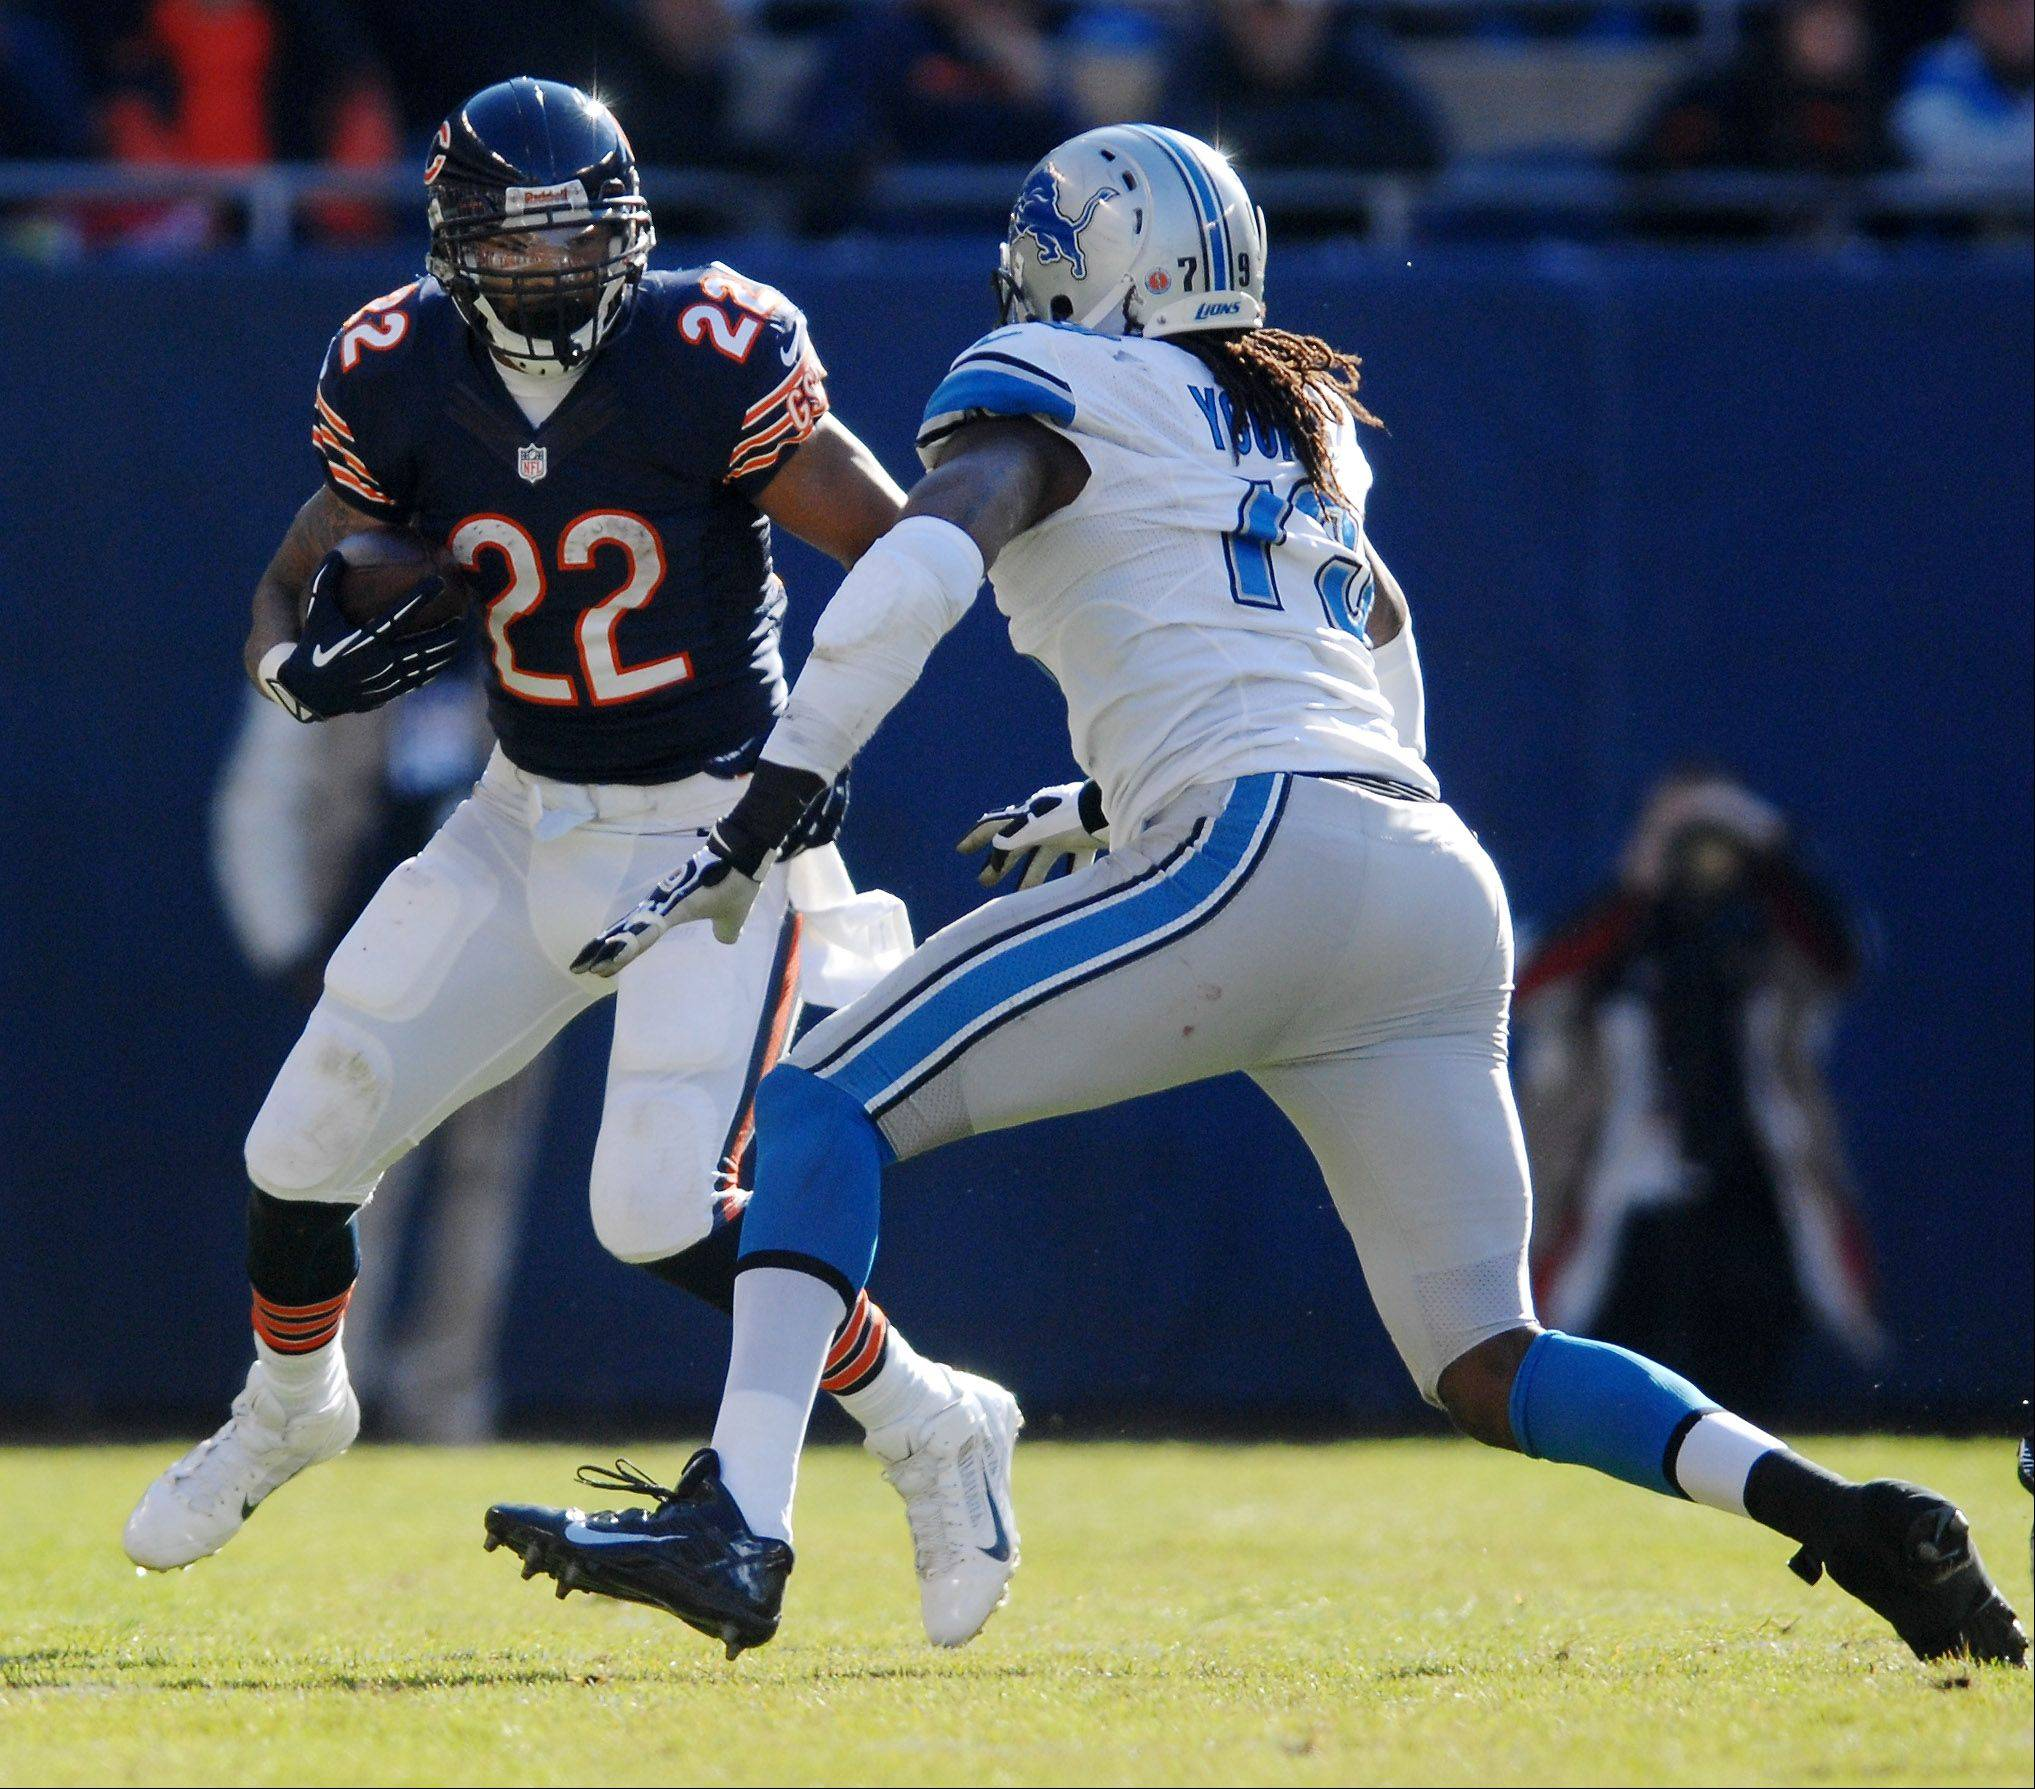 Chicago Bears running back Matt Forte (22) cant's find room to run as he's bottled up by Detroit Lions defensive end Willie Young (79) during Sunday's game in Chicago.